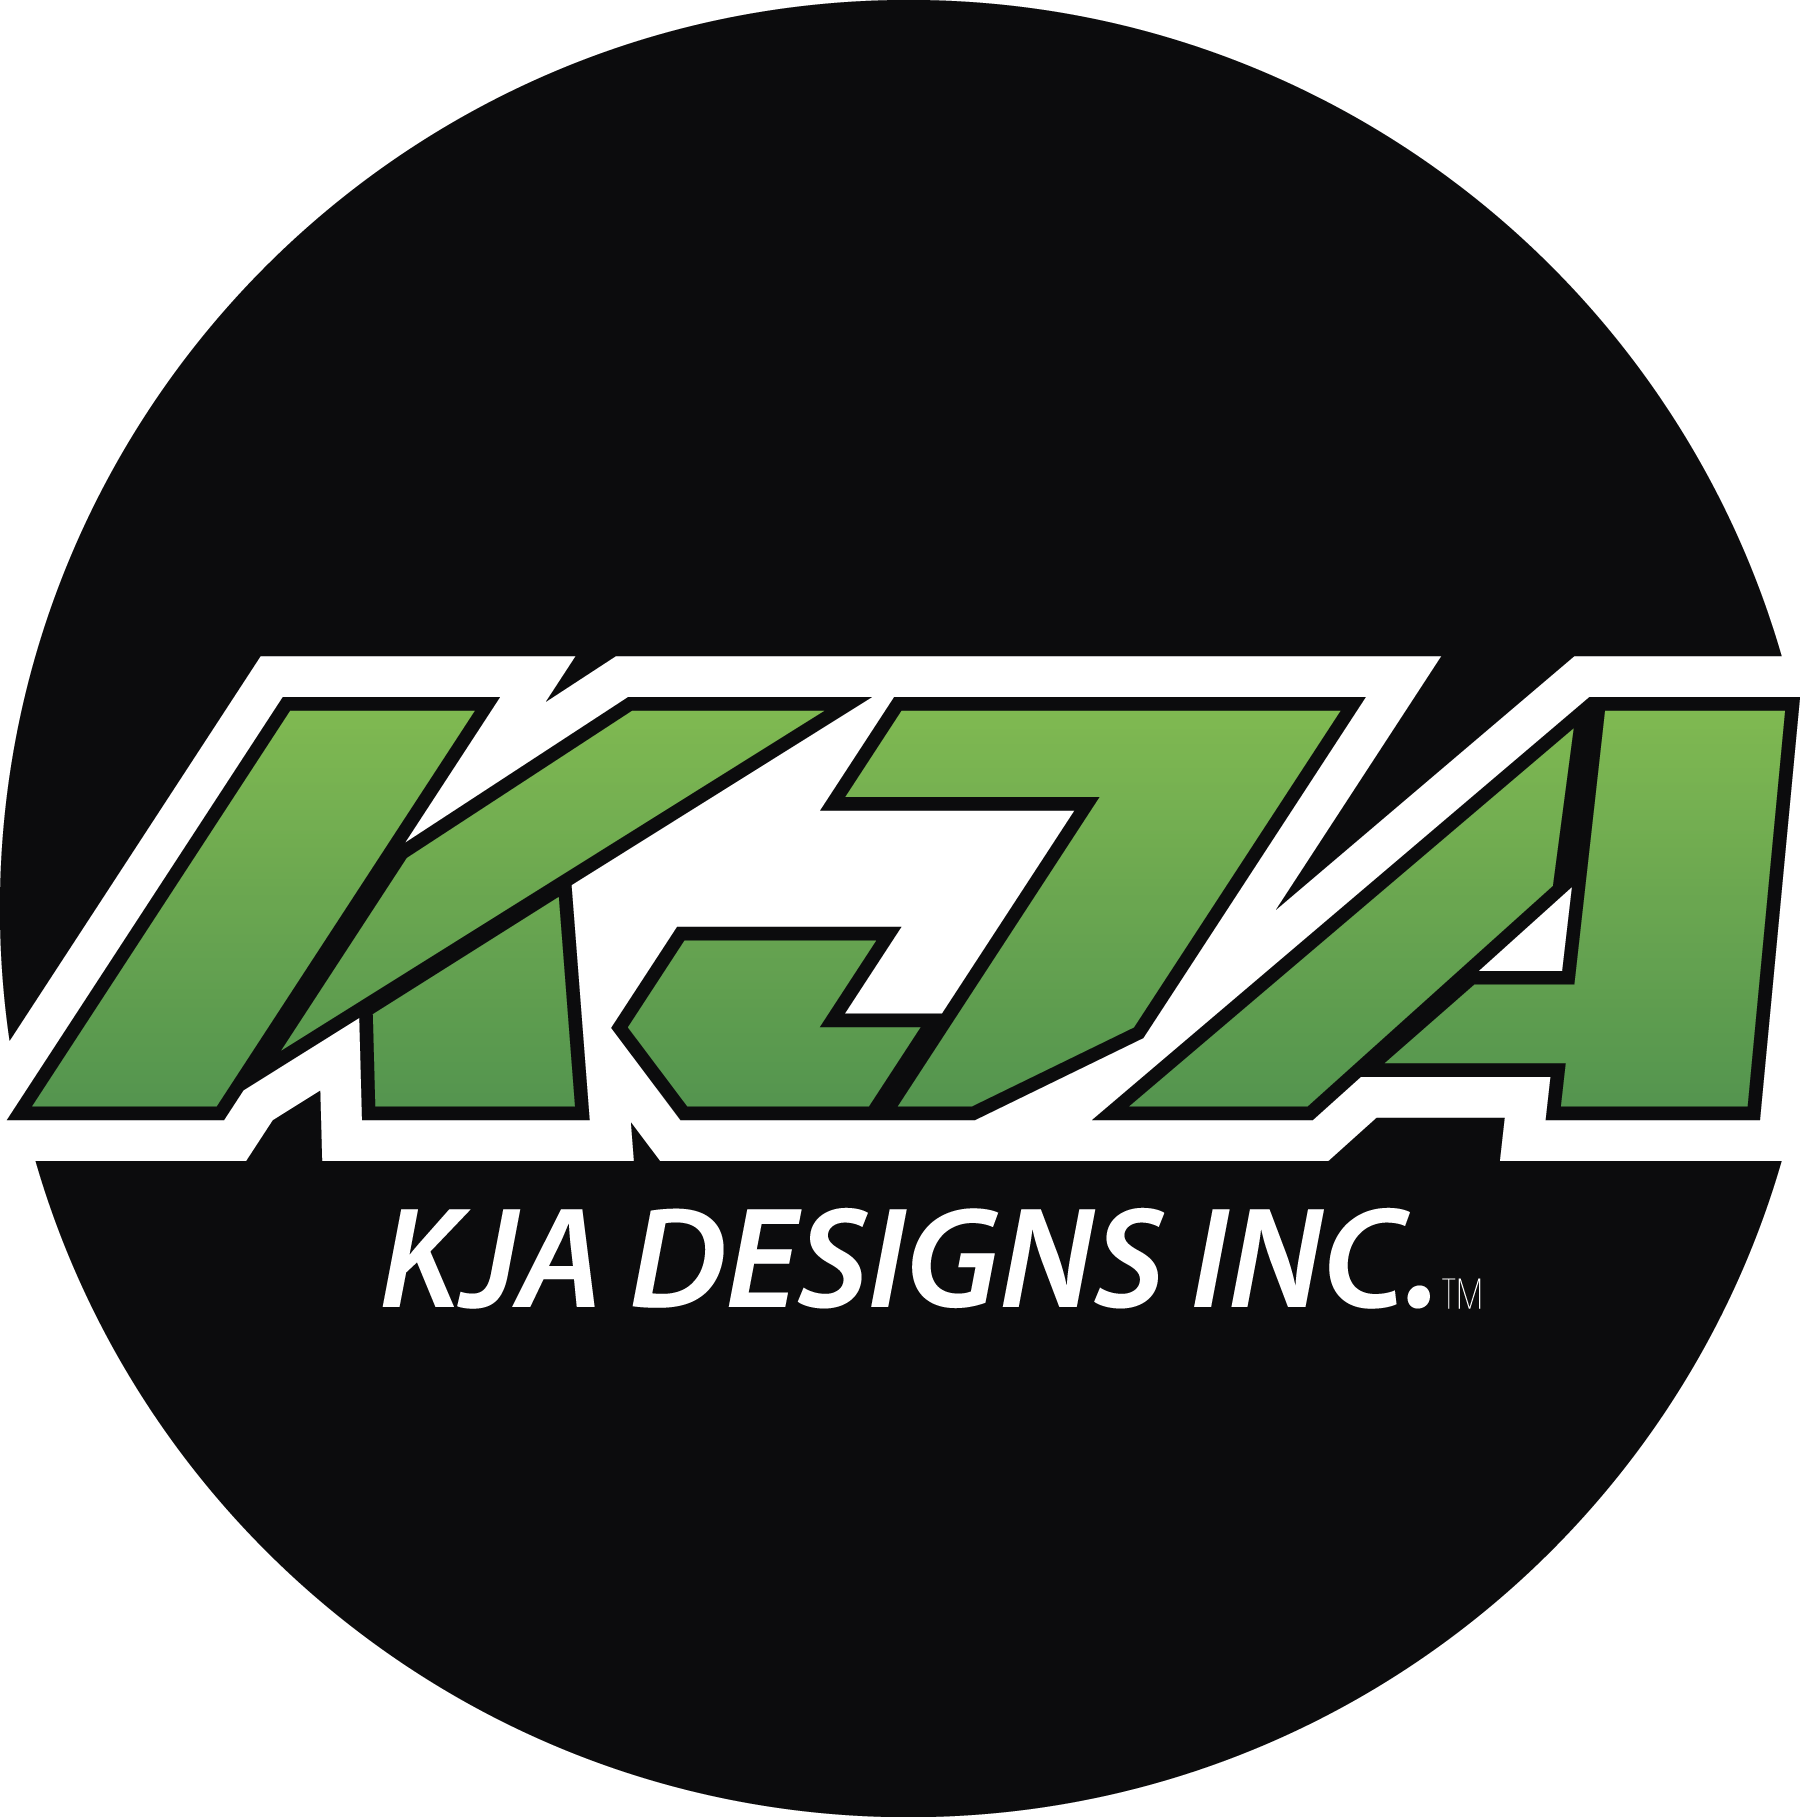 KJA Designs Inc.™ 2C on site